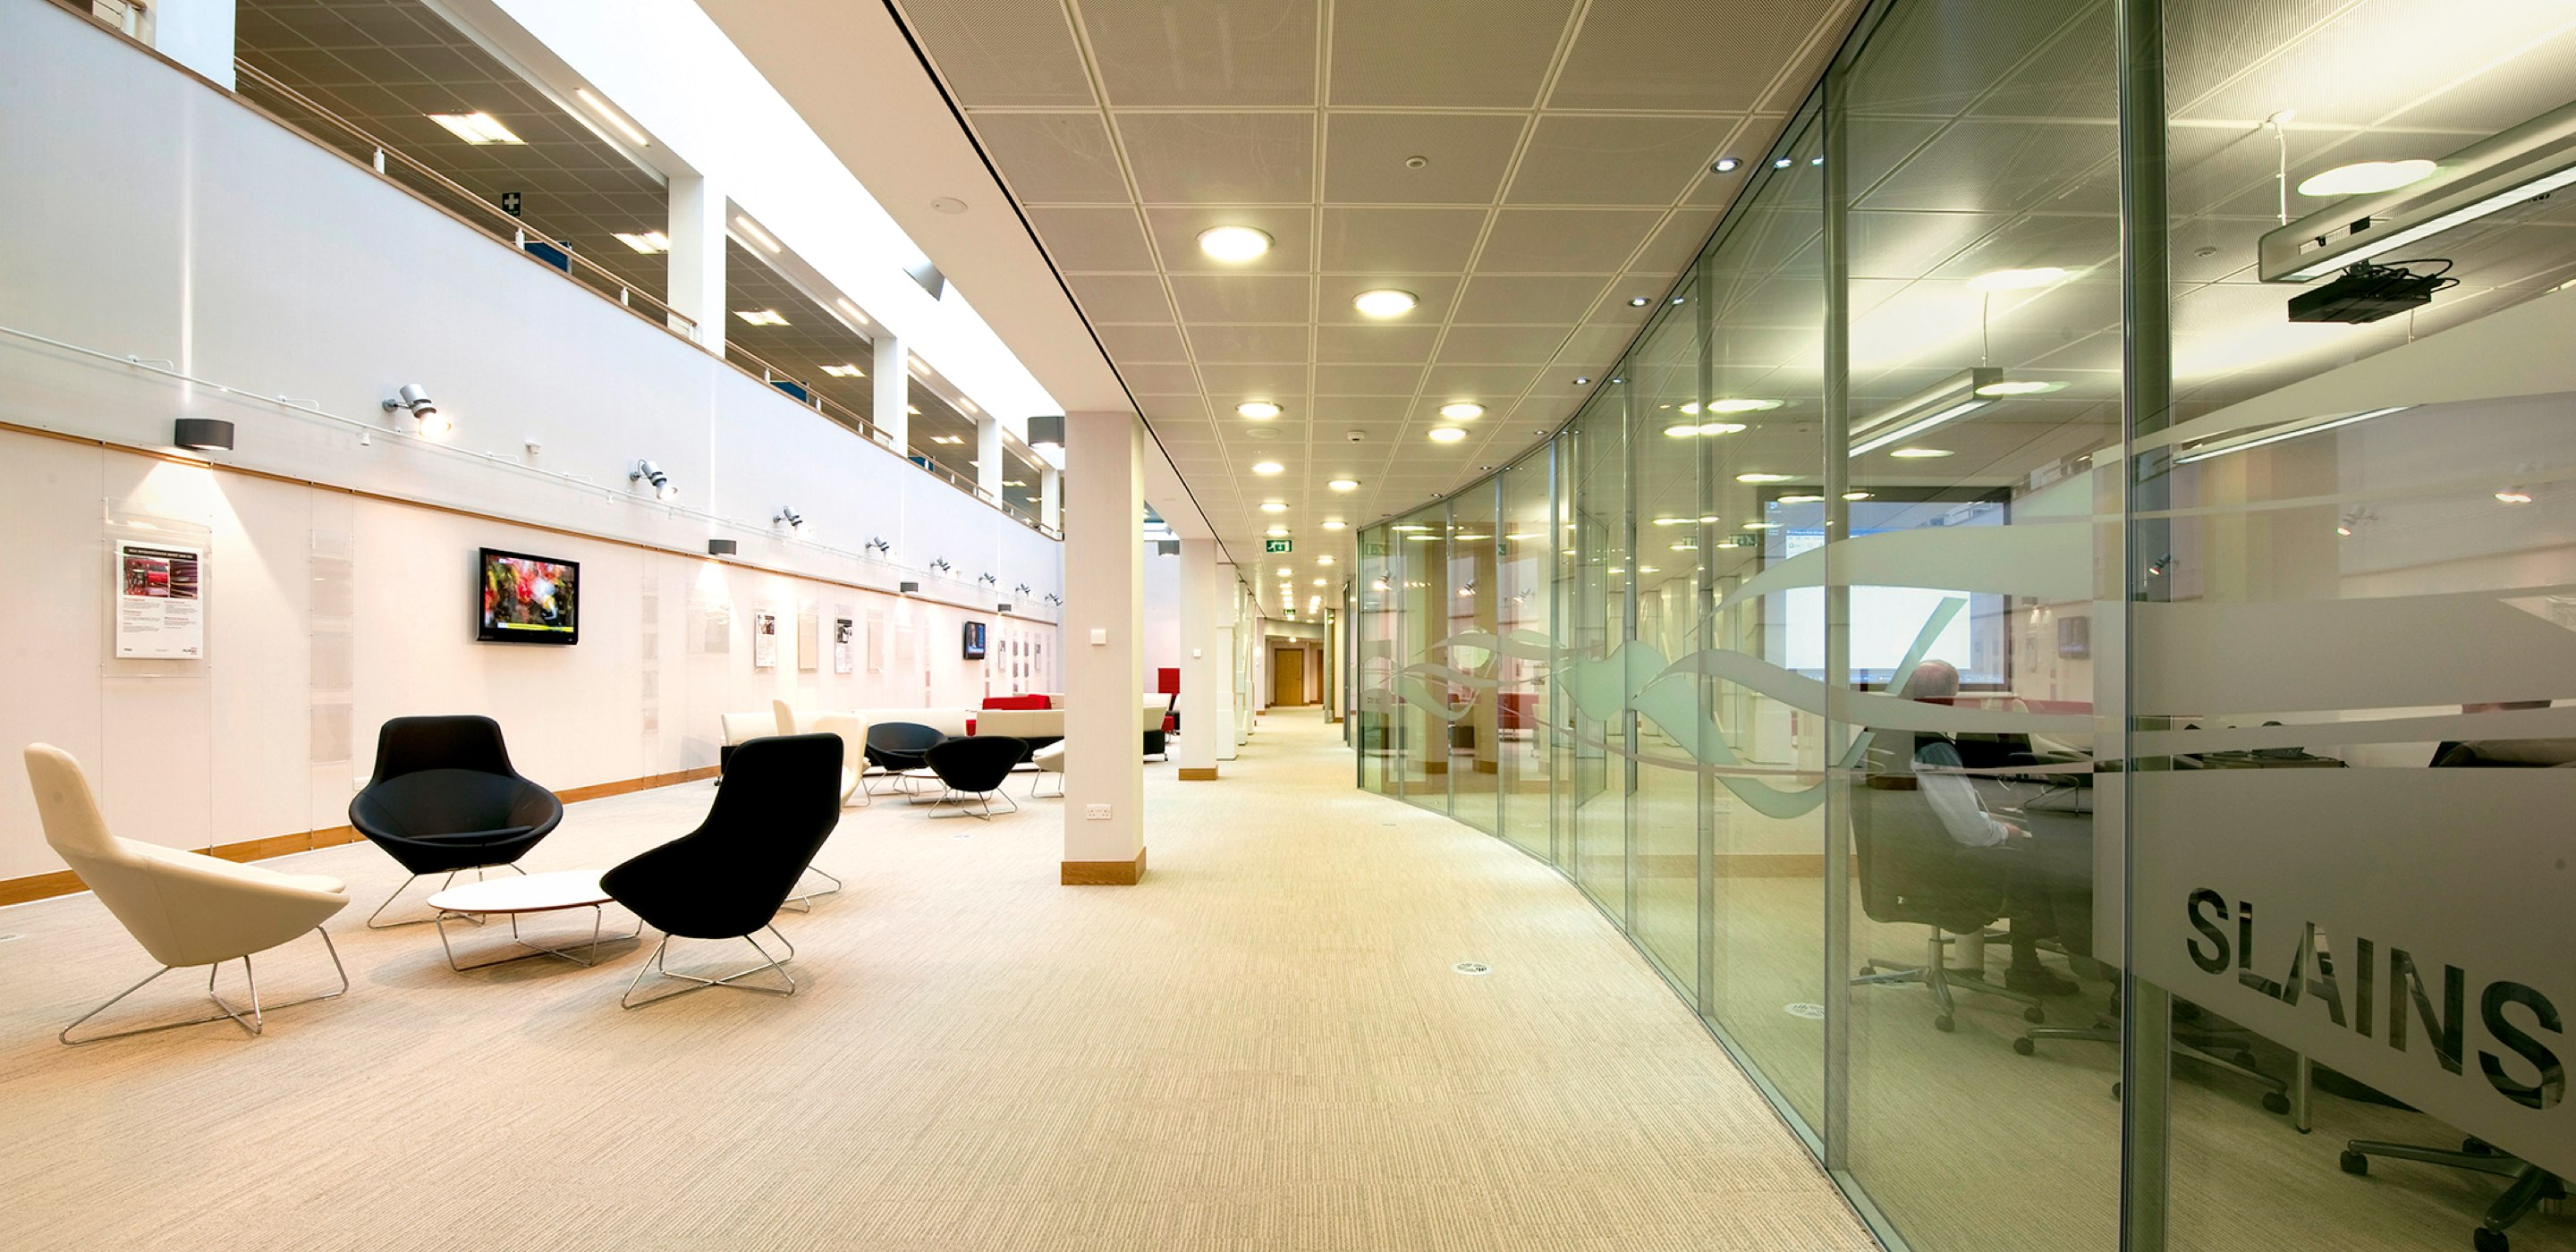 Corporate Interiors Design and Build - Large office lobby area with glass partition